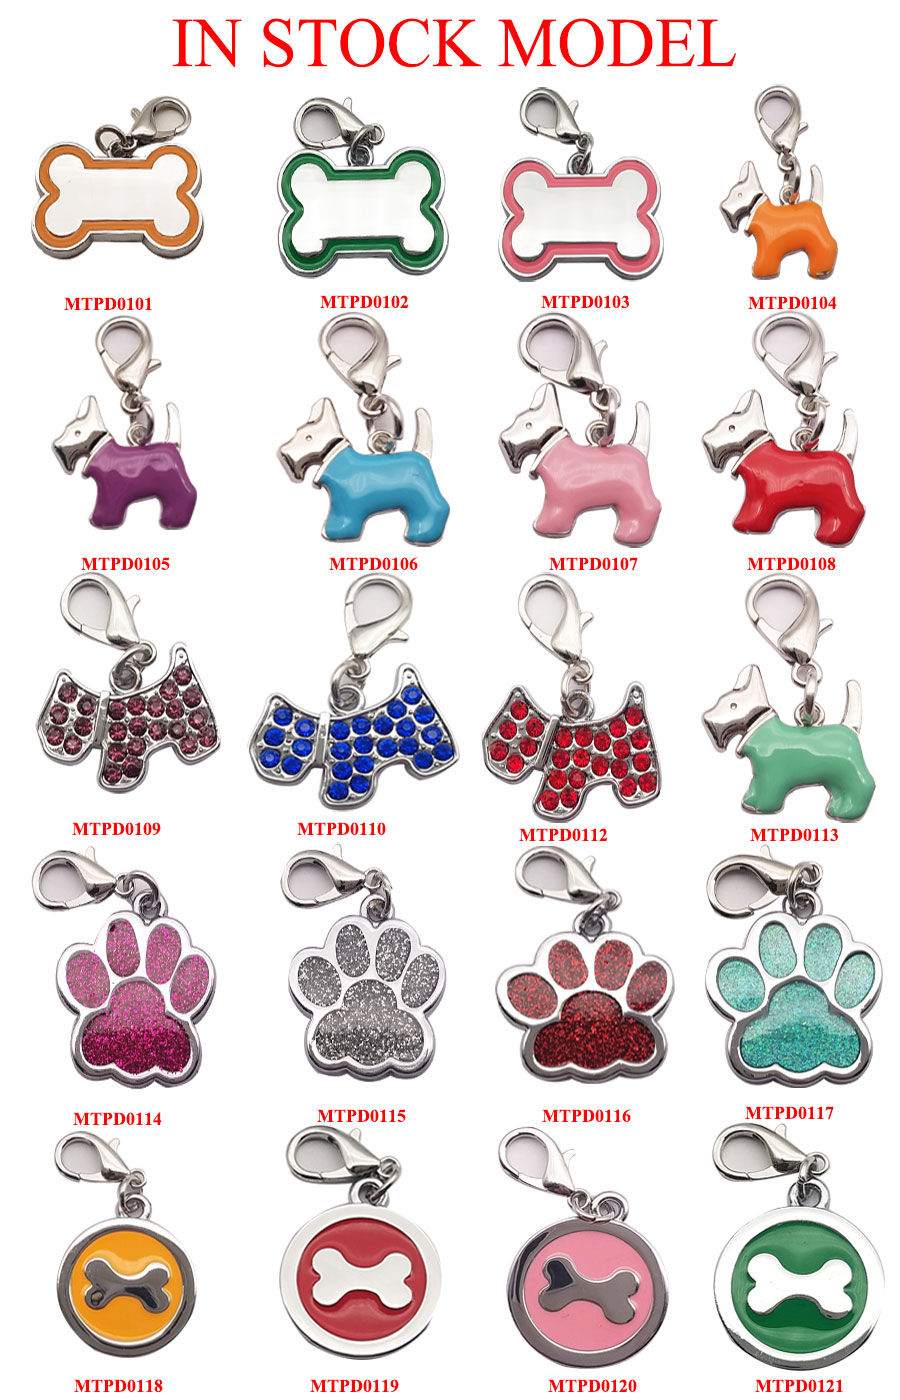 IN Stock Bulk Purple Filled 2.5CM Round Heart Shaped Pet Collar Pet Dog ID Name Tag for Bag Zipper